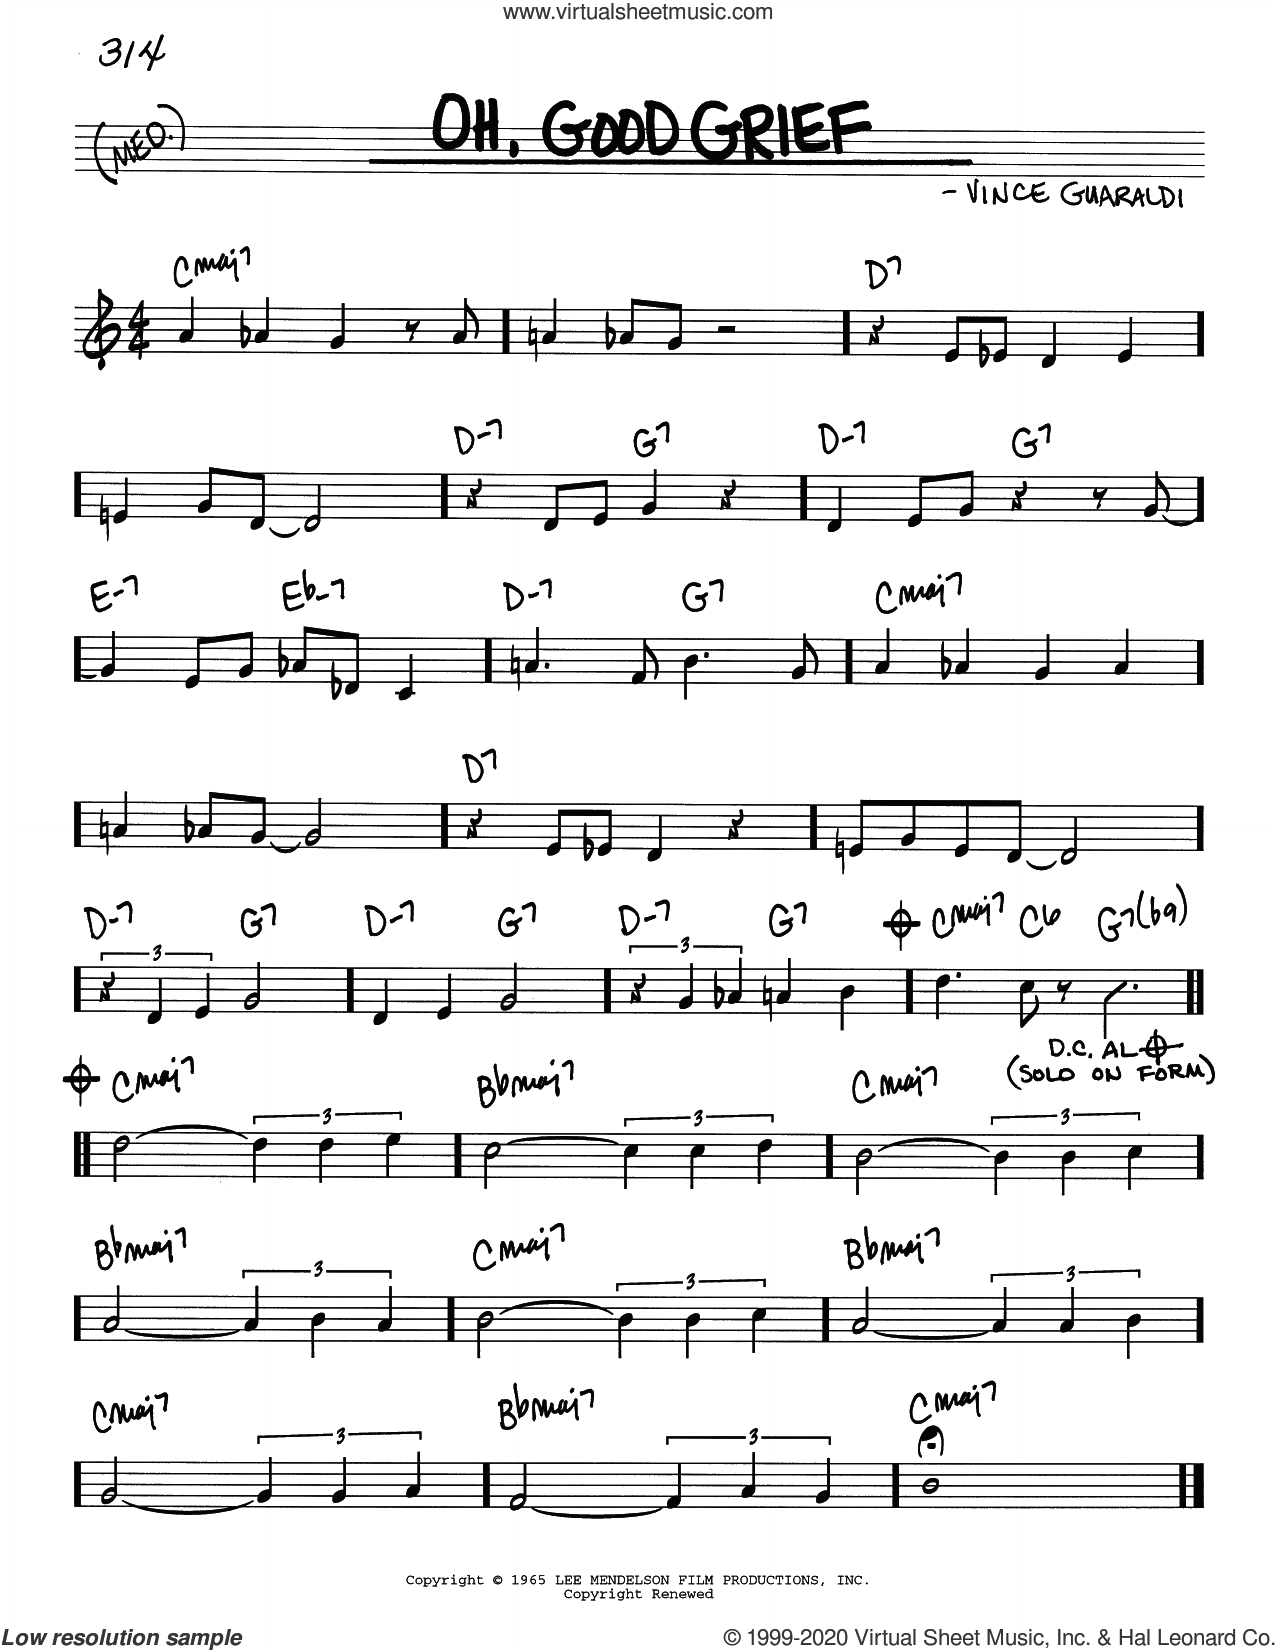 Oh, Good Grief sheet music for voice and other instruments (real book) by Vince Guaraldi, intermediate skill level